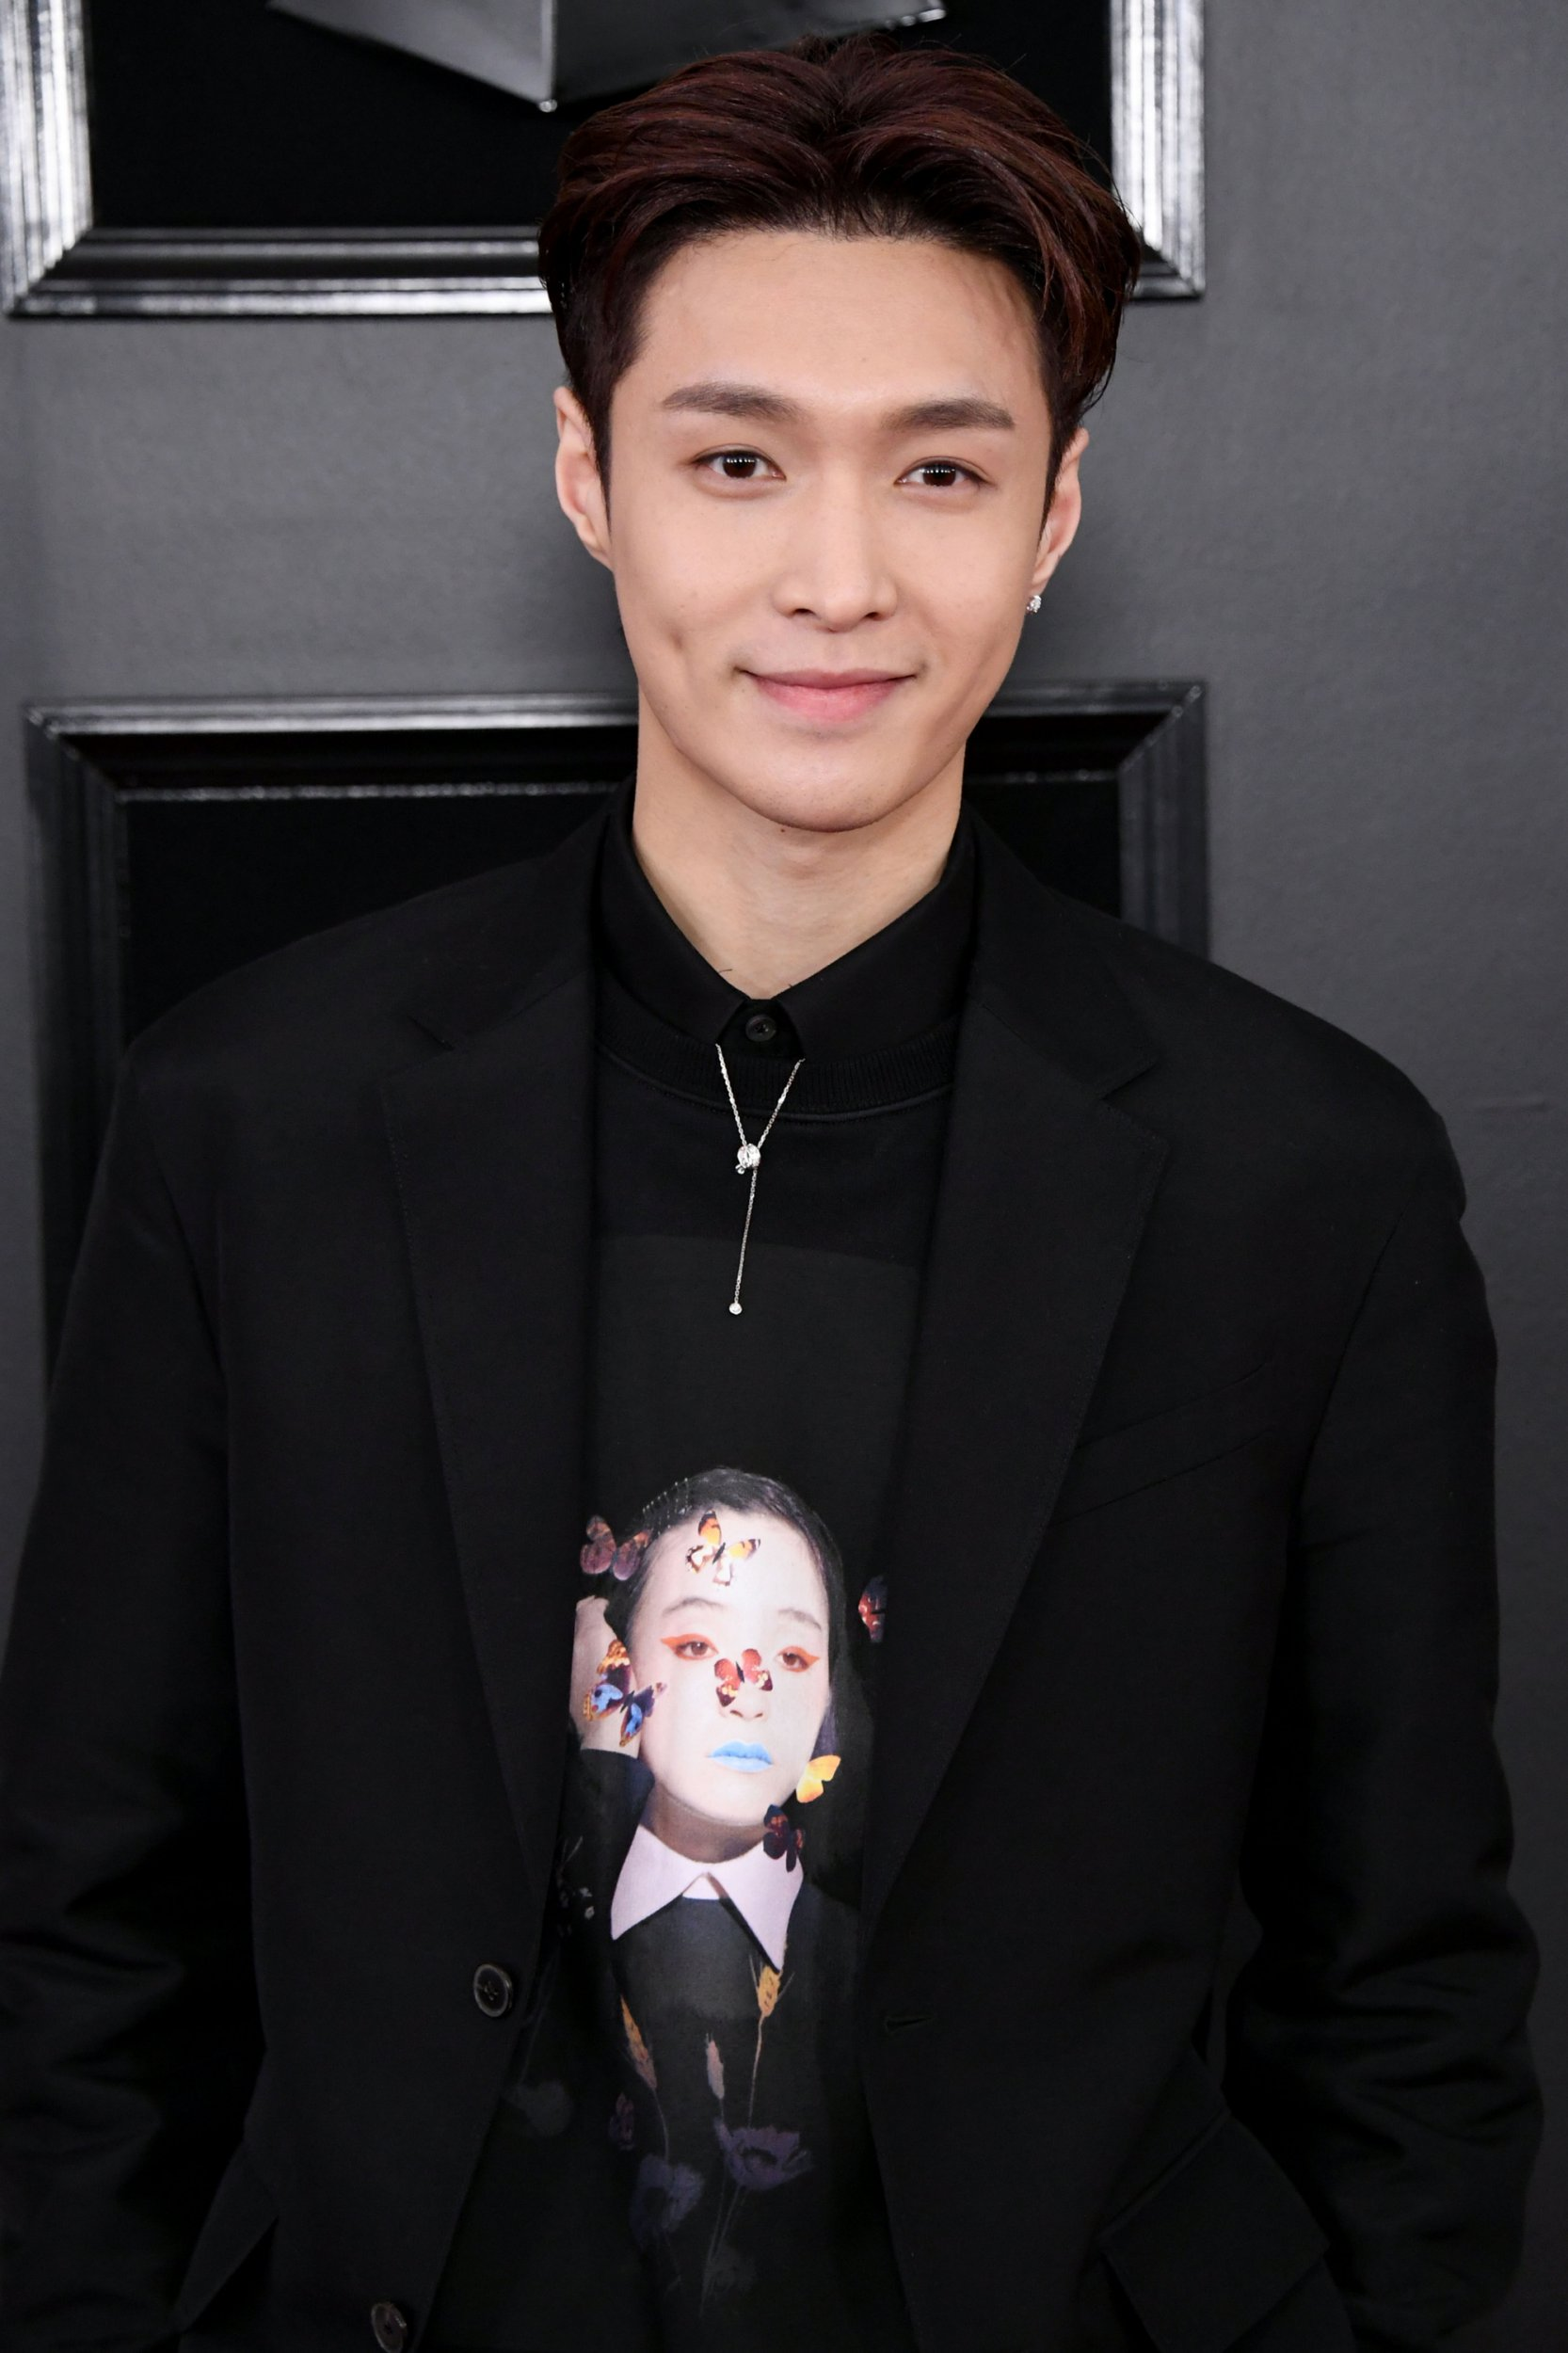 EXO member Lay Zhang attends the Grammy Awards at the Staples Center in California